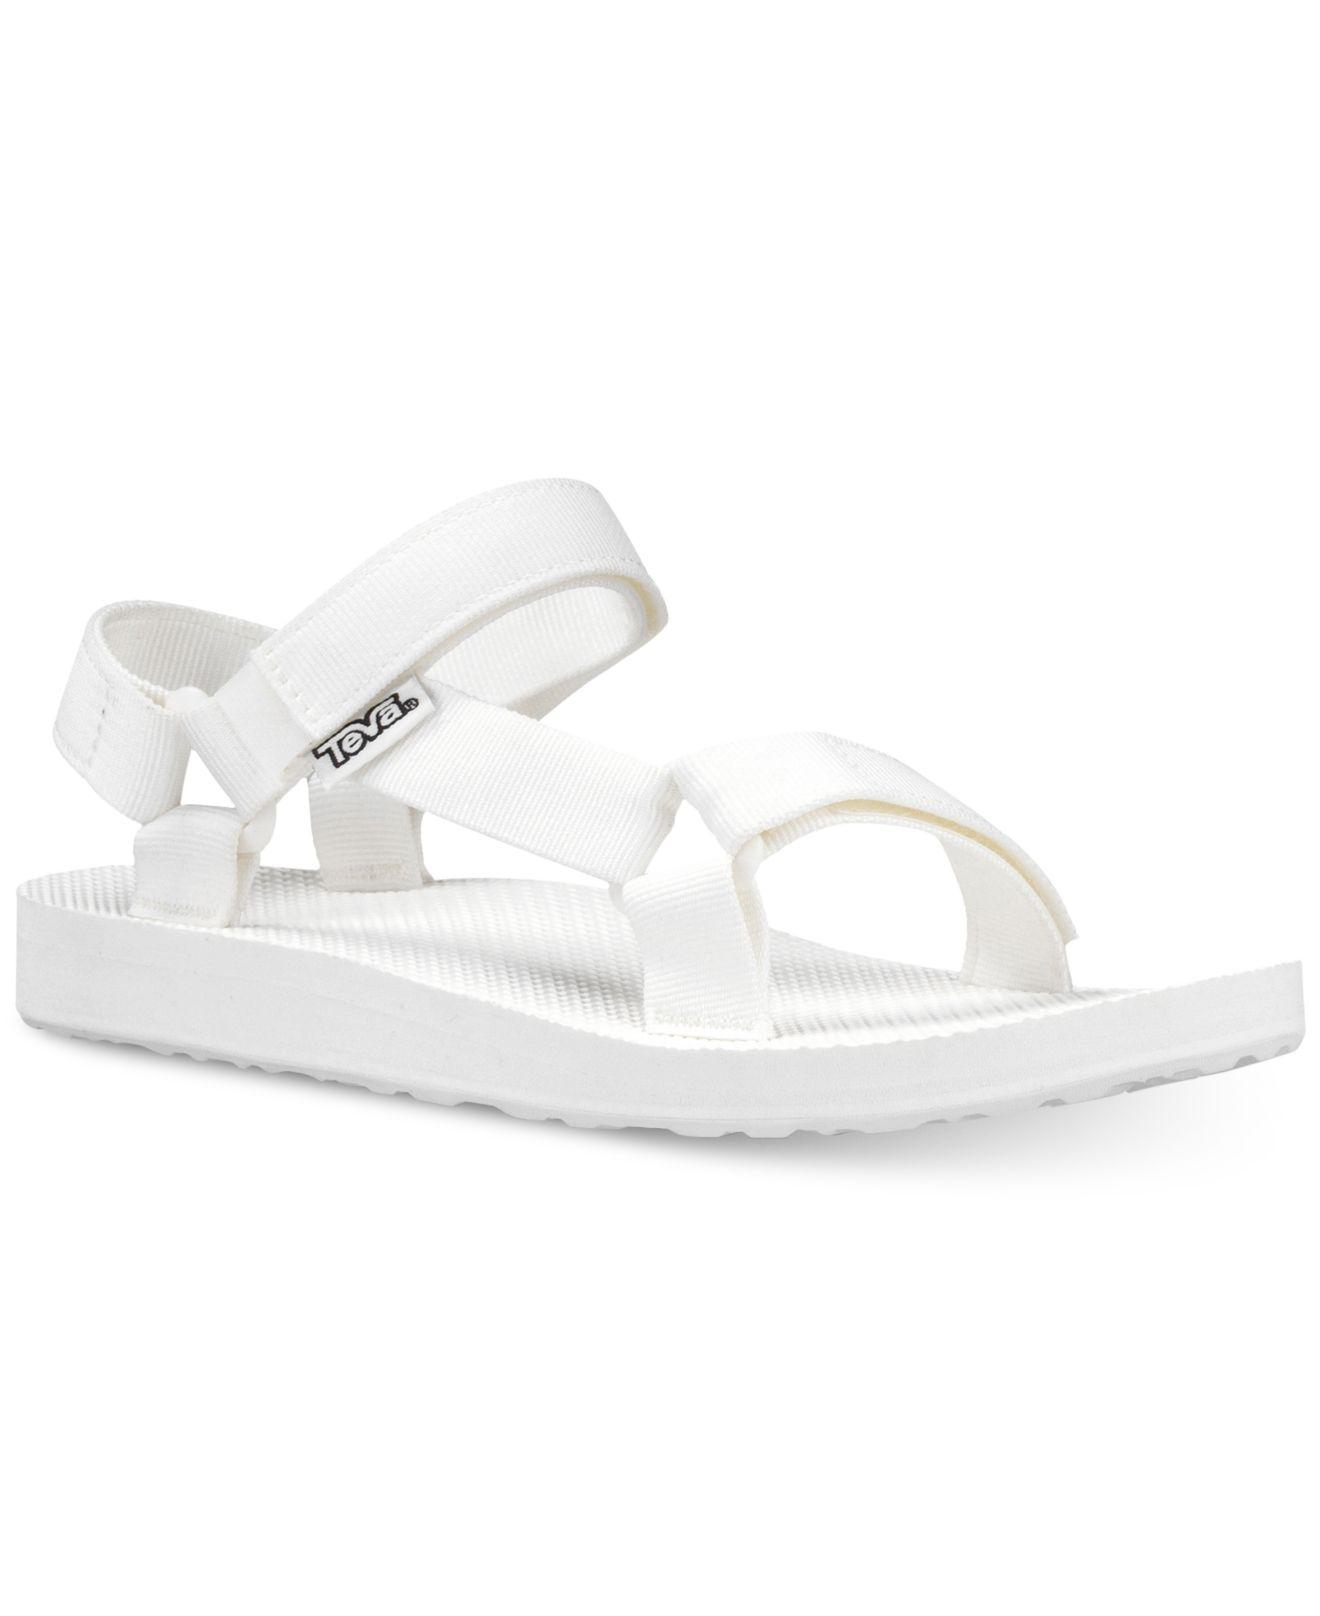 4bf7253f991801 Lyst - Teva Original Universal Sandals in White - Save 34%